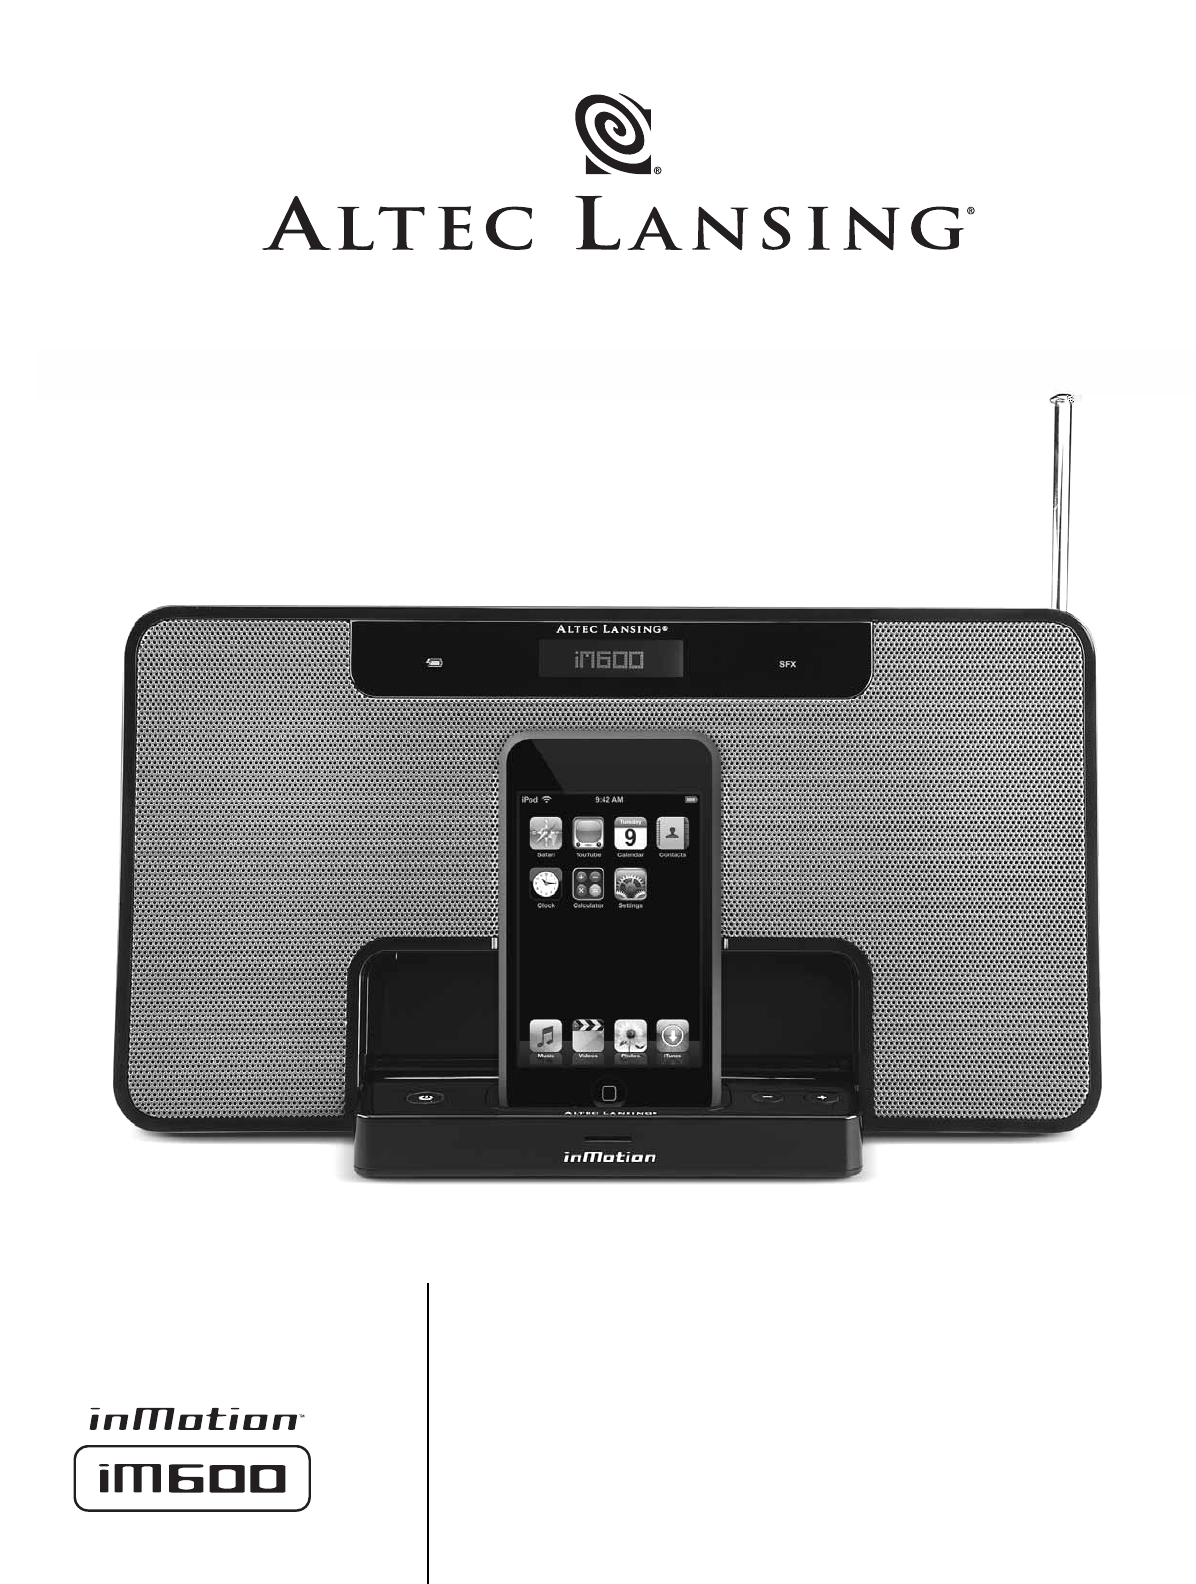 altec lansing mp3 docking station im600 user guide manualsonline com rh portablemedia manualsonline com altec lansing inmotion im600 service manual altec lansing inmotion im600 service manual